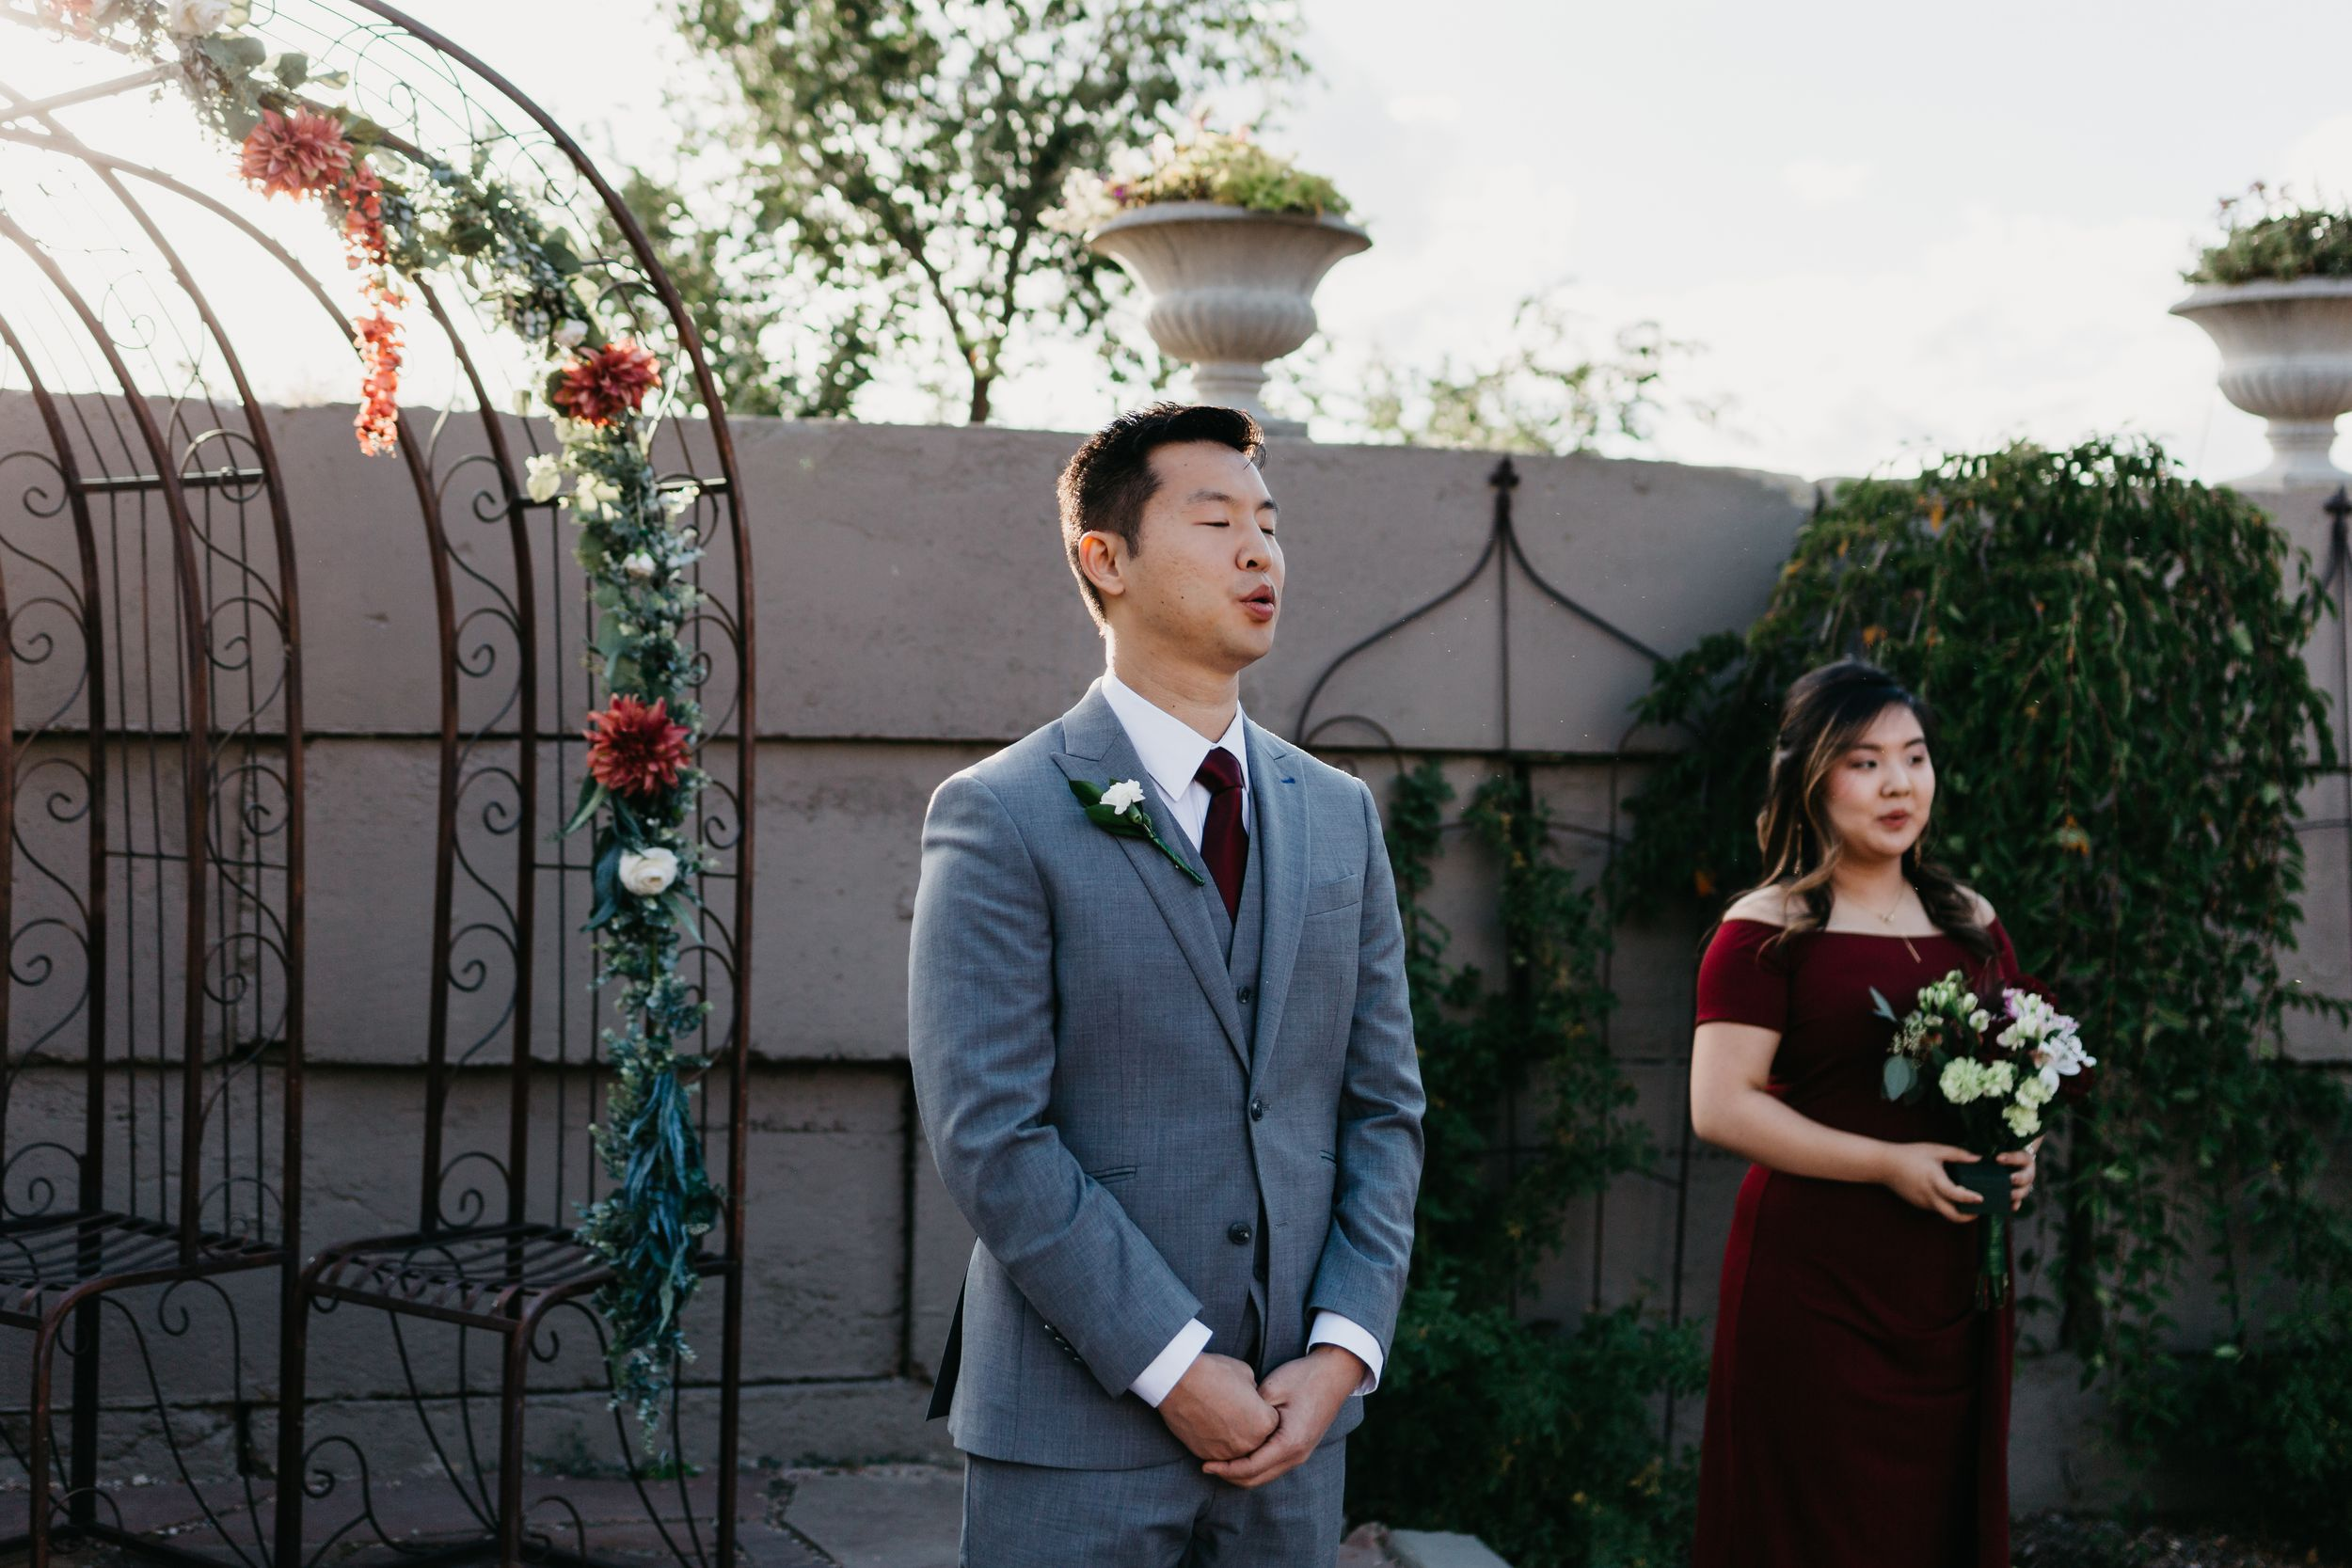 Groom Photography, Groom Shot Ideas, Colorado Springs Wedding Photographer, Hillside Gardens Colorado Springs,